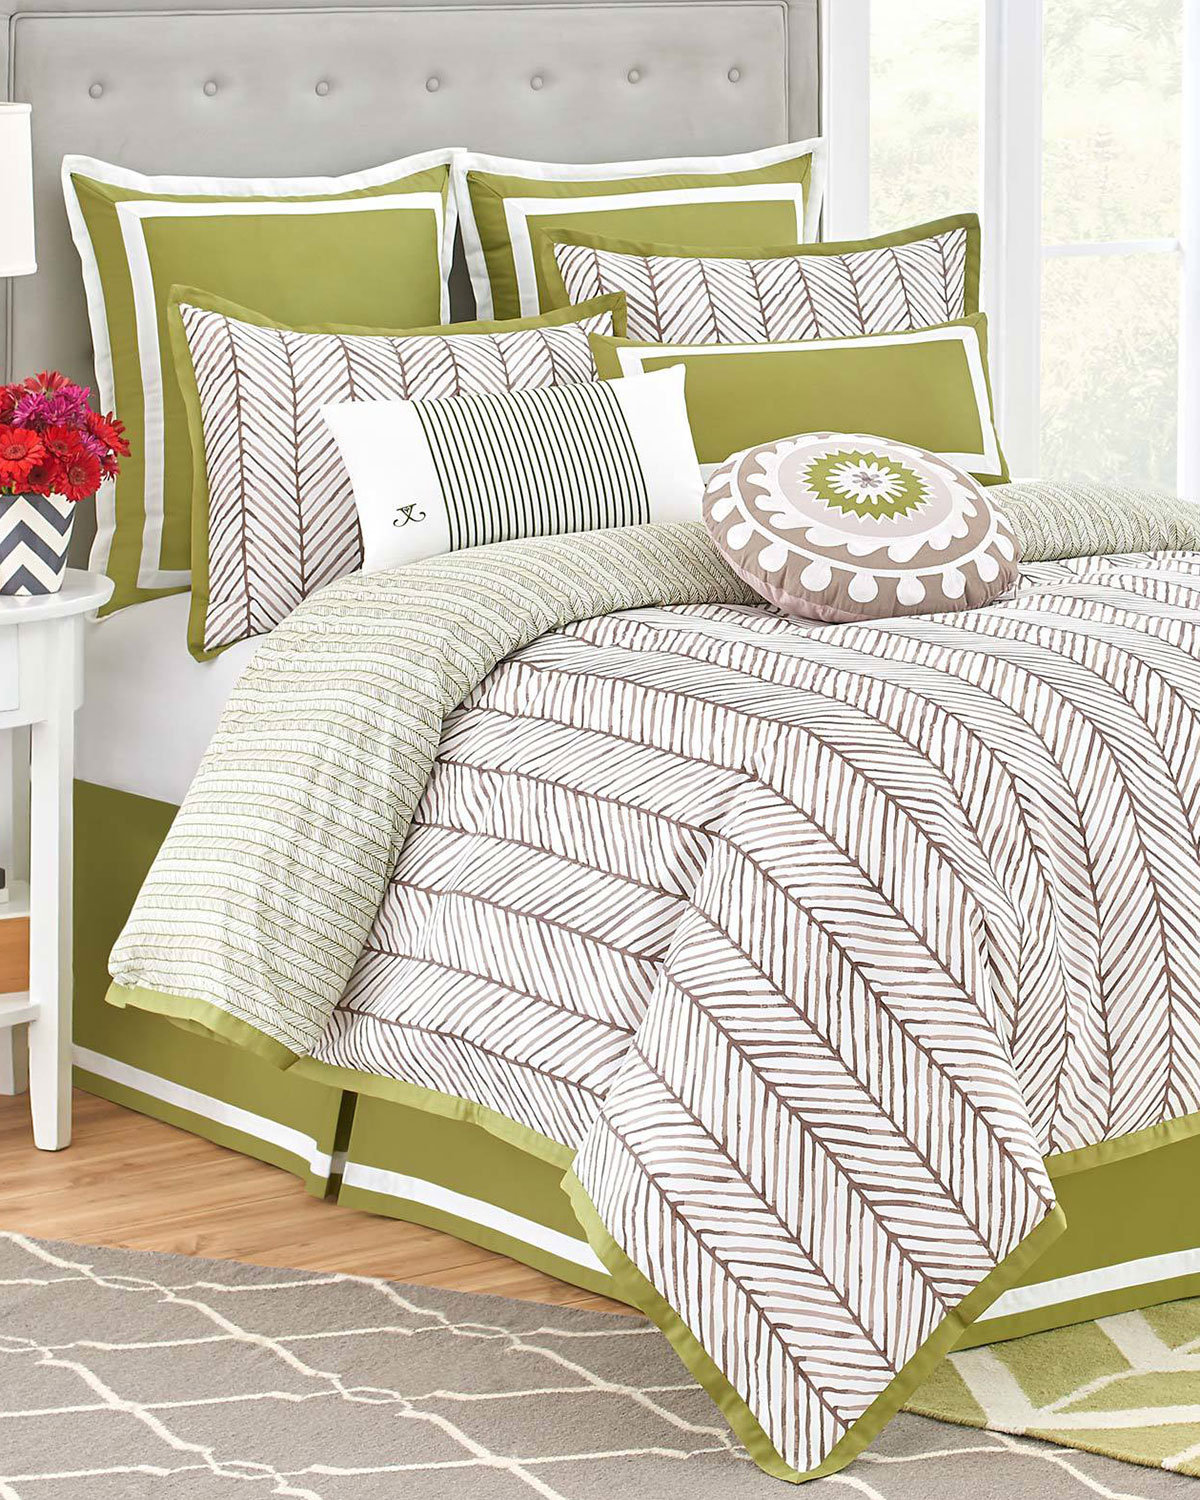 King Arrows 4-Piece Comforter Set